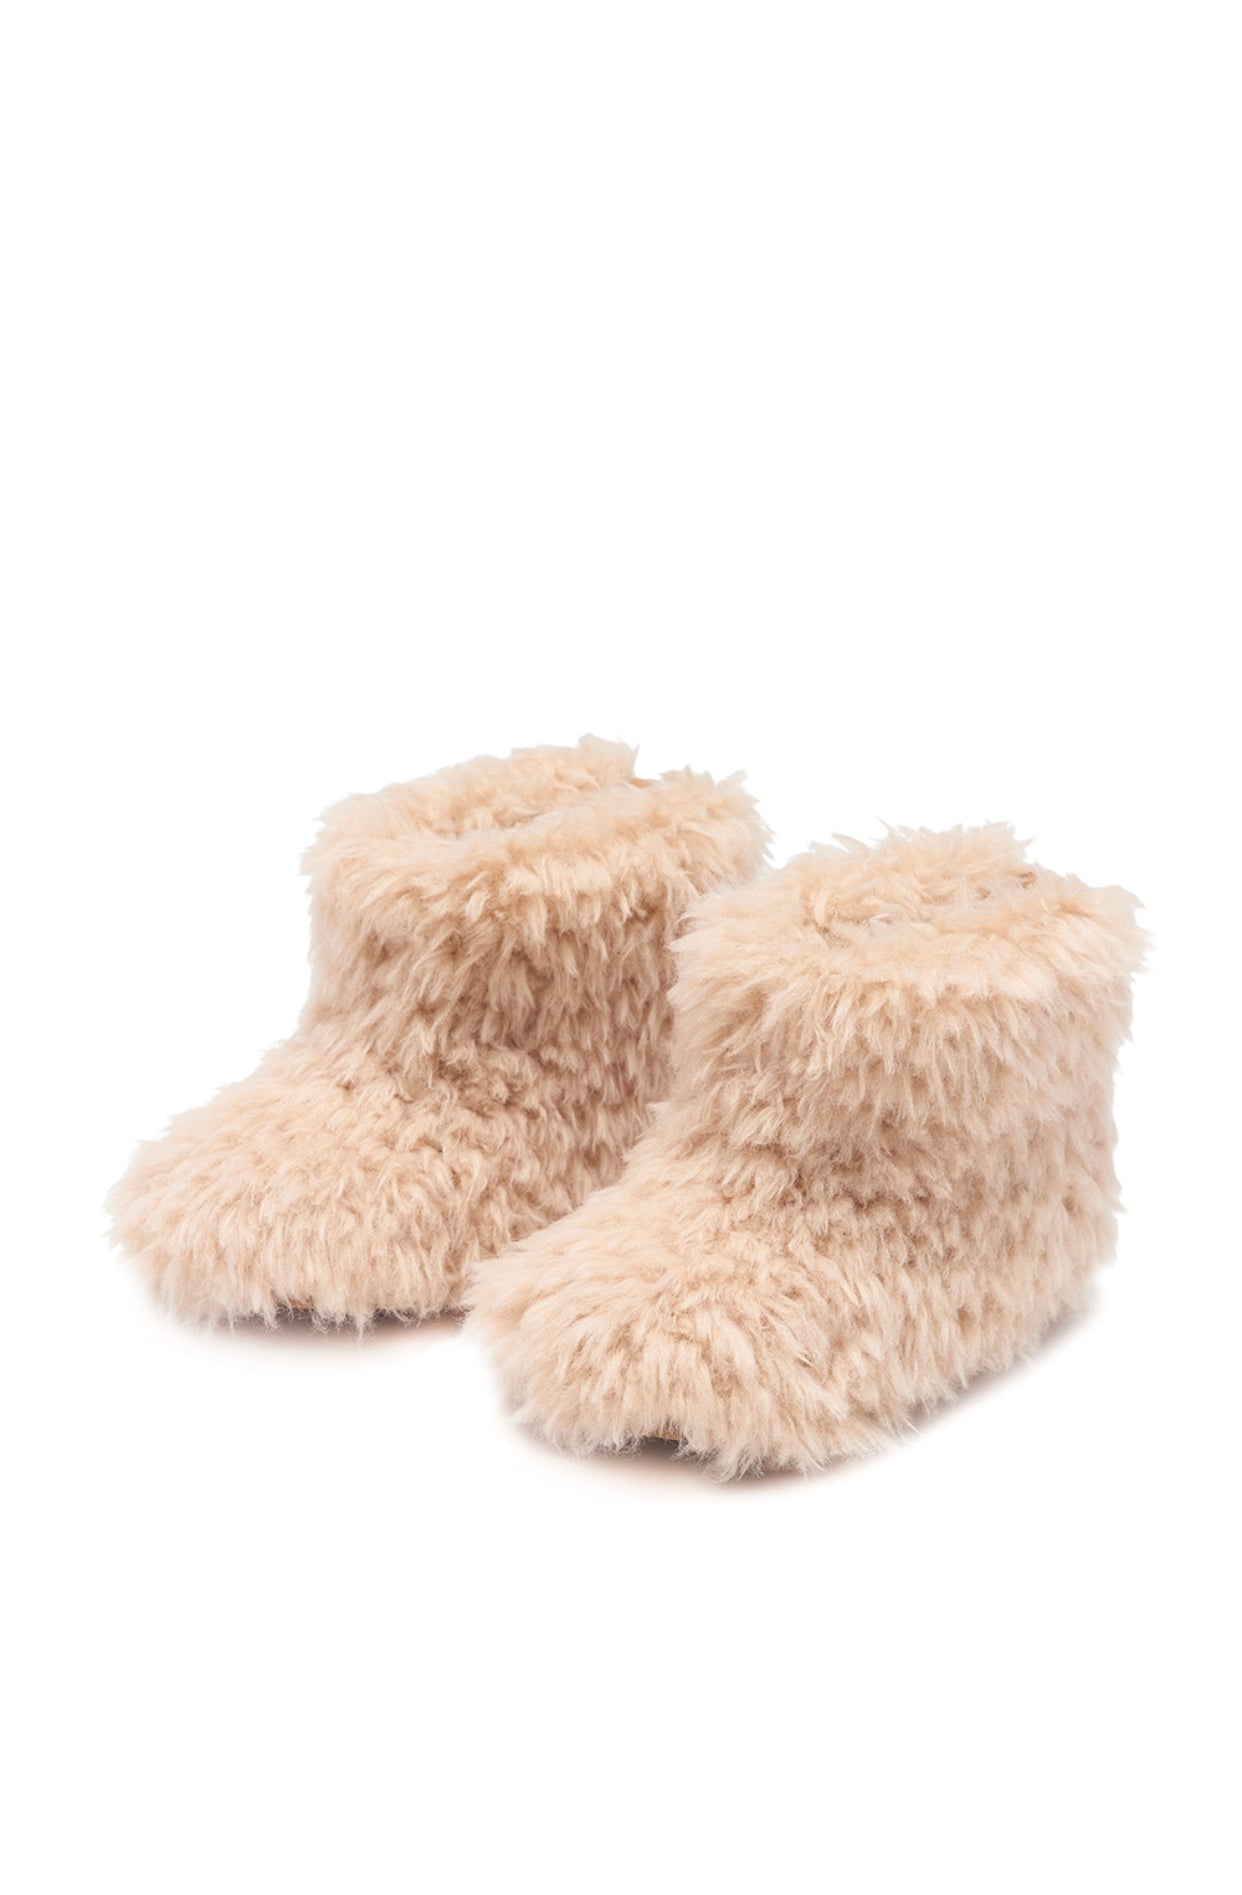 Age of Innocence YETI MINI in Beige